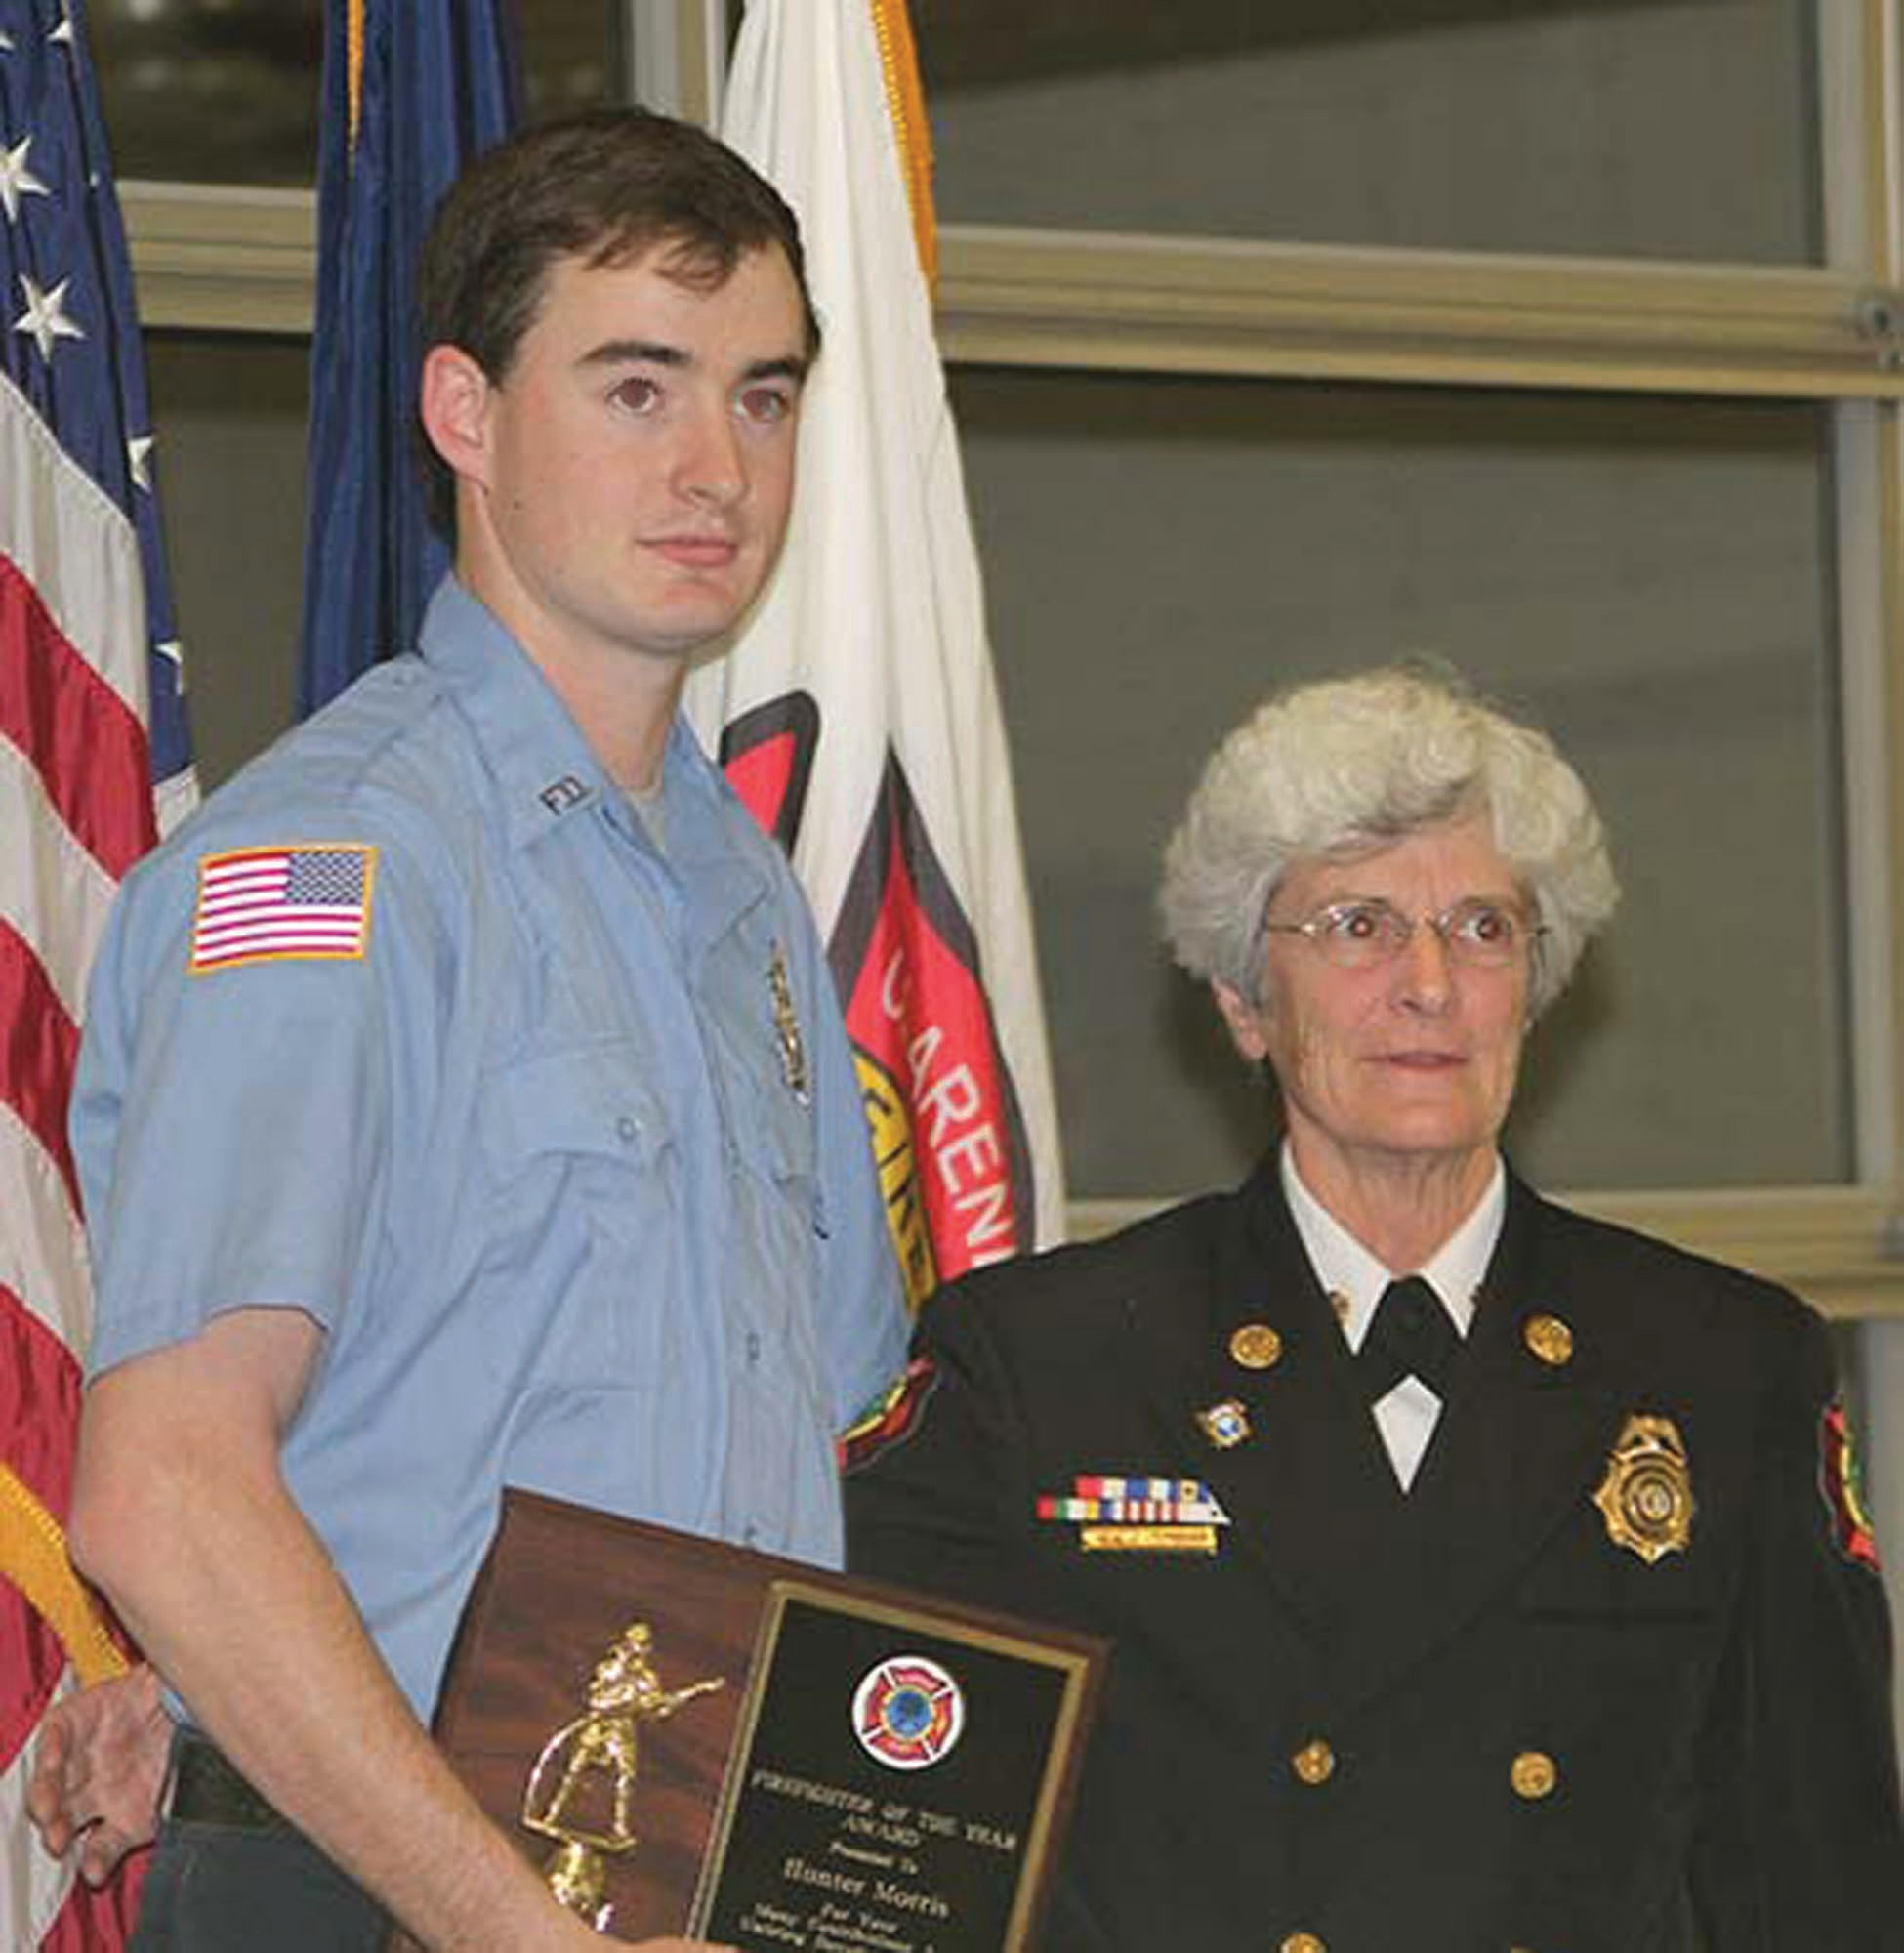 Hunter Morris was presented Clarendon County Fire Department's 2017 Firefighter of the Year award at the department's recent awards/Christmas dinner.